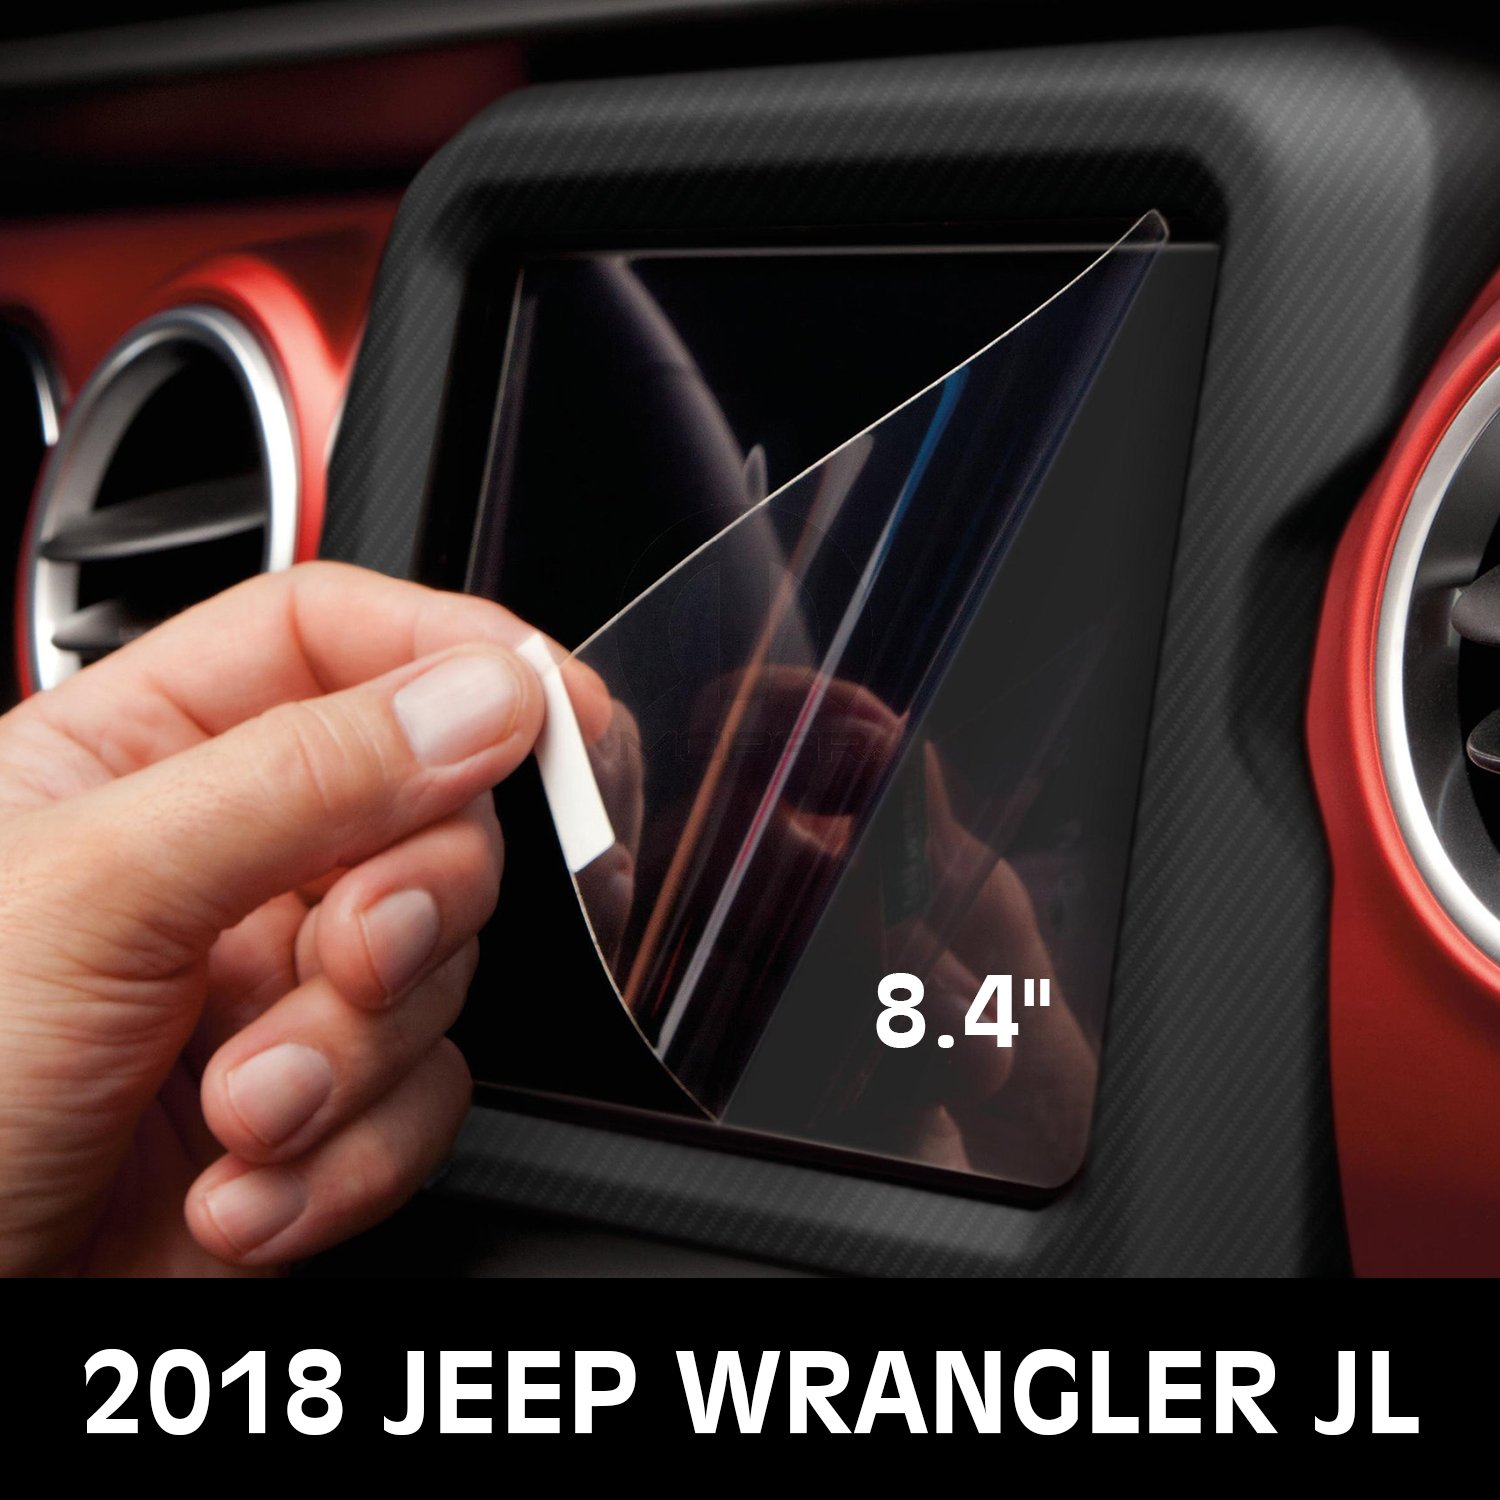 IBACP 8.4 Inch Media Center Screen Uconnect Car Navigation Screen Protector For 2018 Jeep Wrangler JL